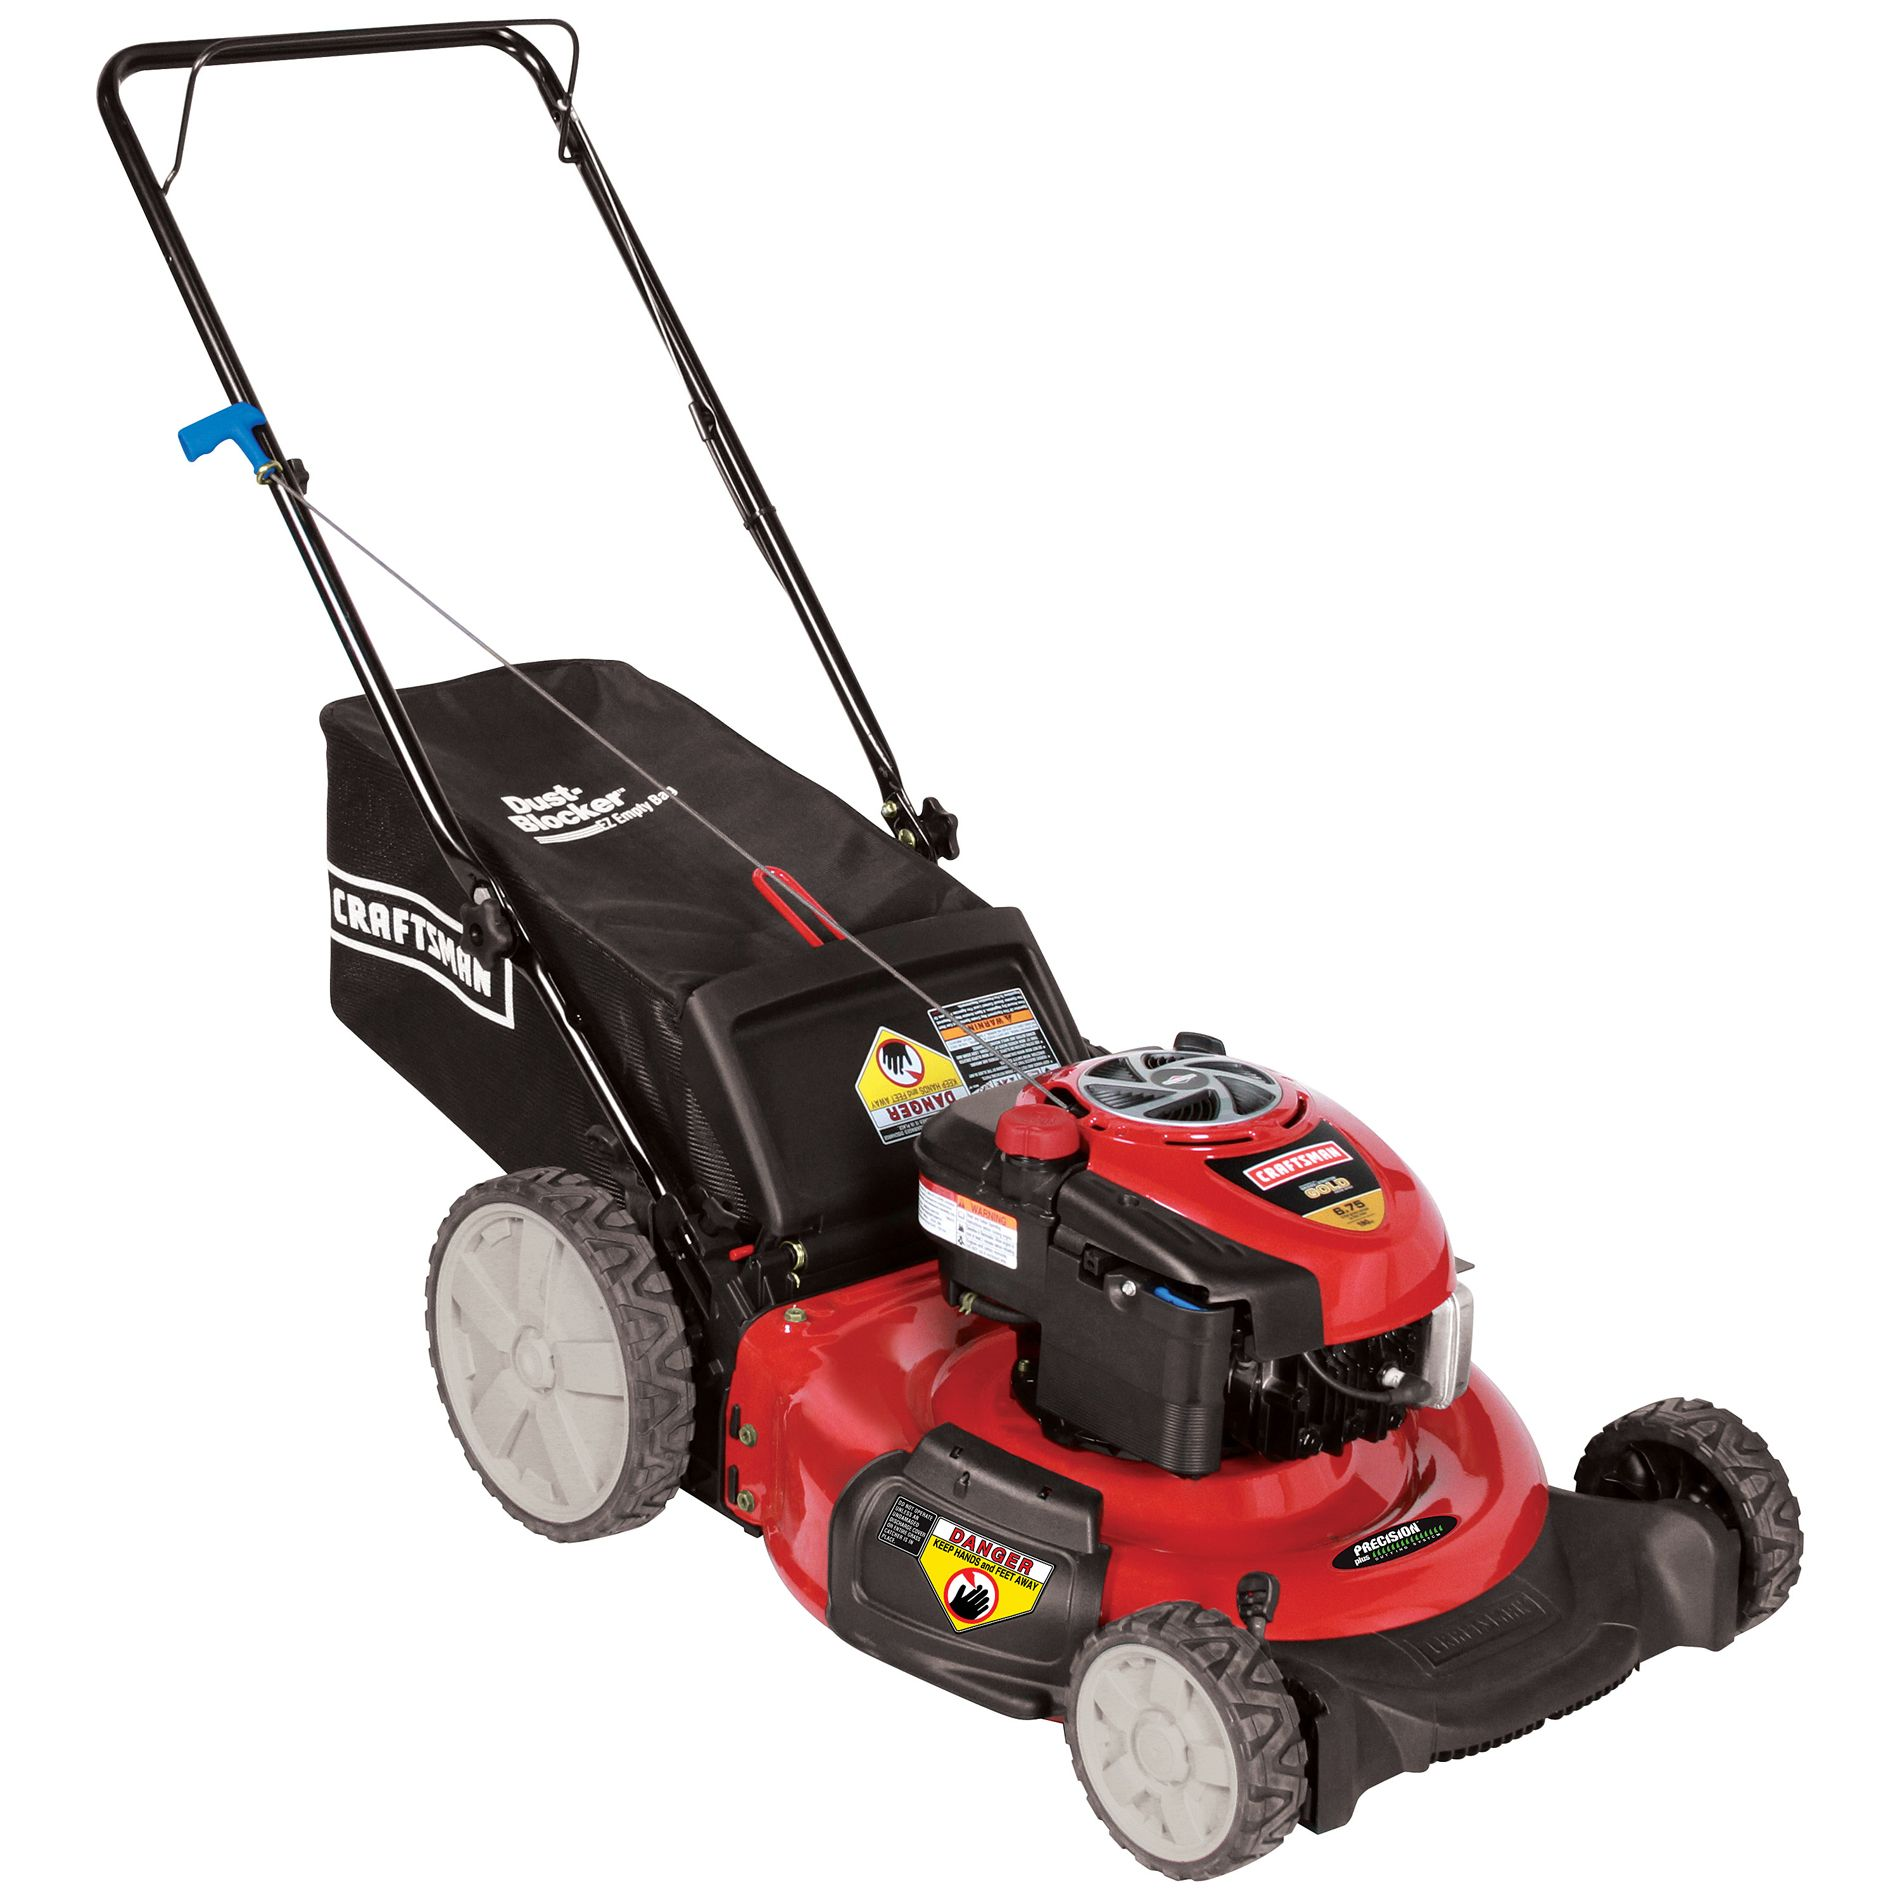 Craftsman 190cc* Briggs & Stratton Engine, High-Wheel Rear Bag Push Mower